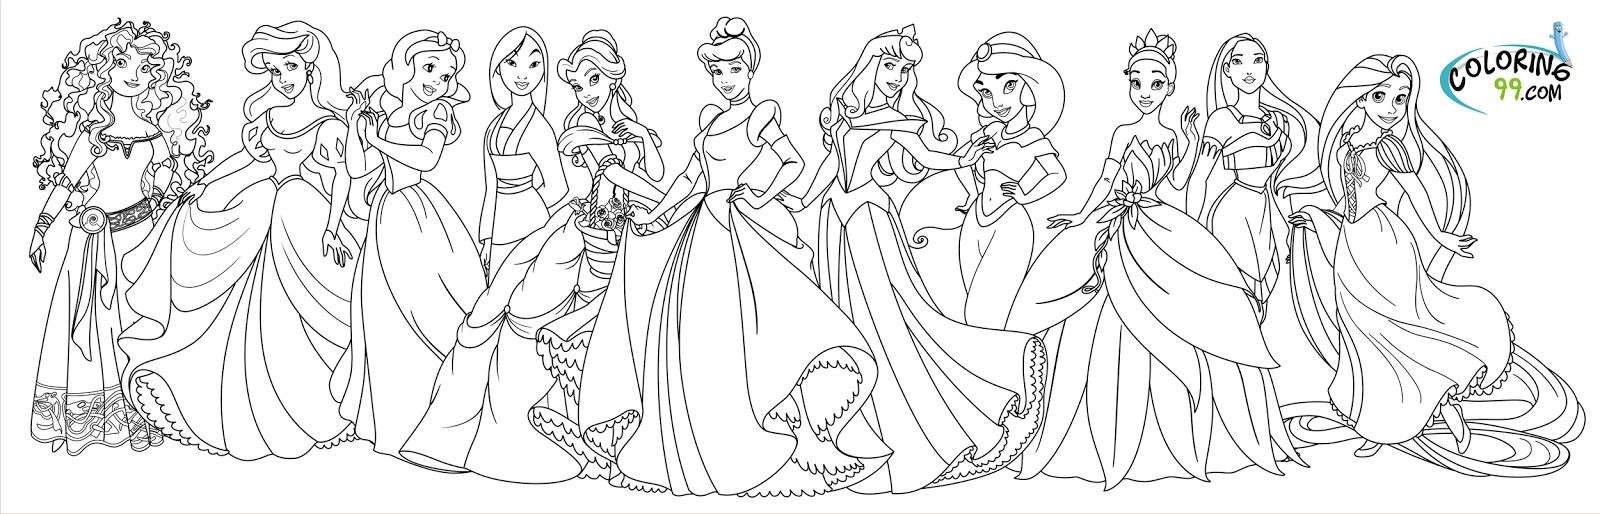 Fans Request Disney Princess With Merida From Brave Coloring Pages Coloring99 Com Avec Images Coloriage Princesse Dessin A Colorier Disney Coloriage